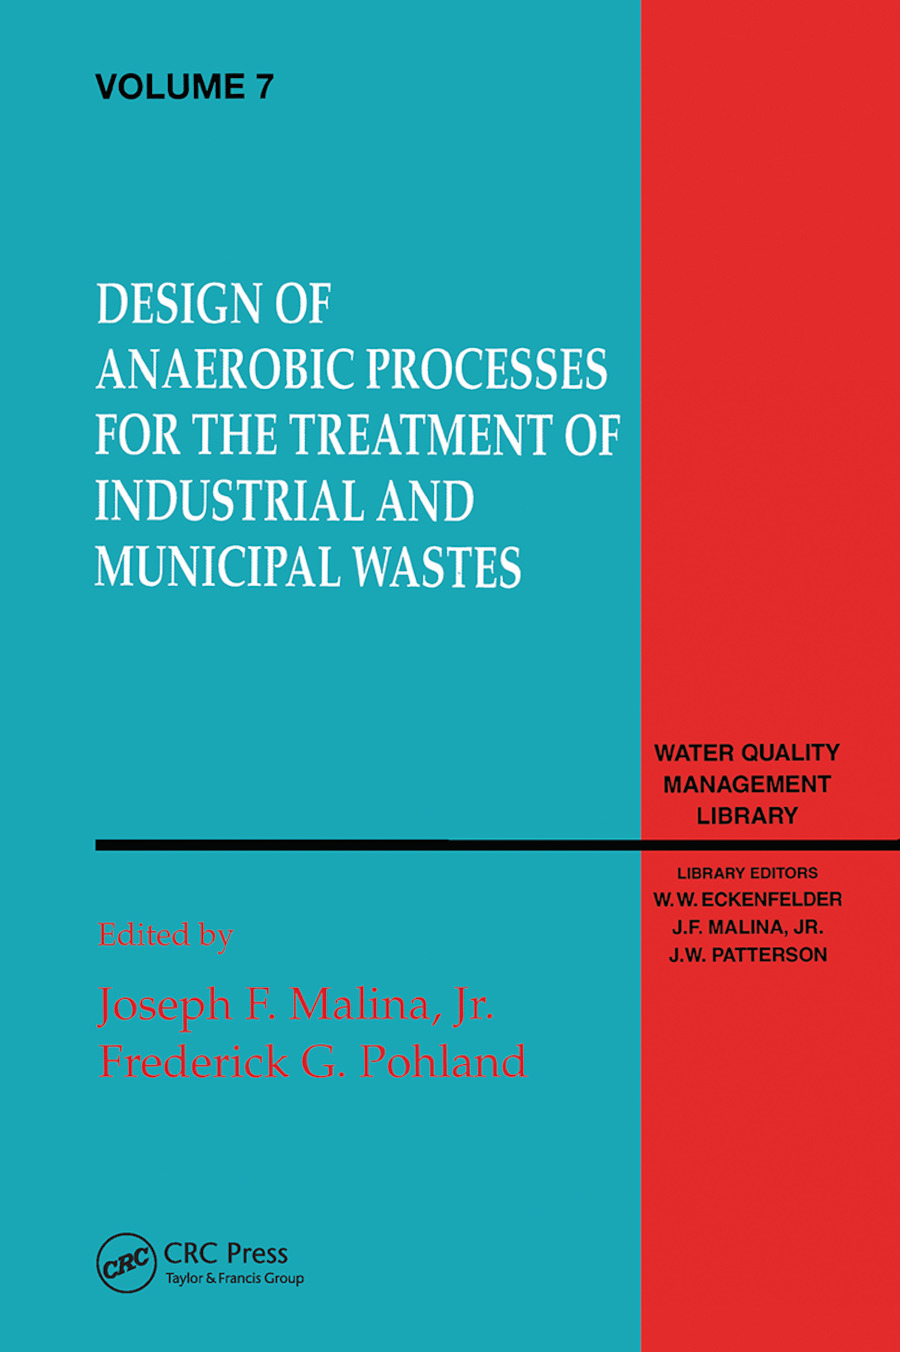 Design of Anaerobic Processes for Treatment of Industrial and Muncipal Waste, Volume VII